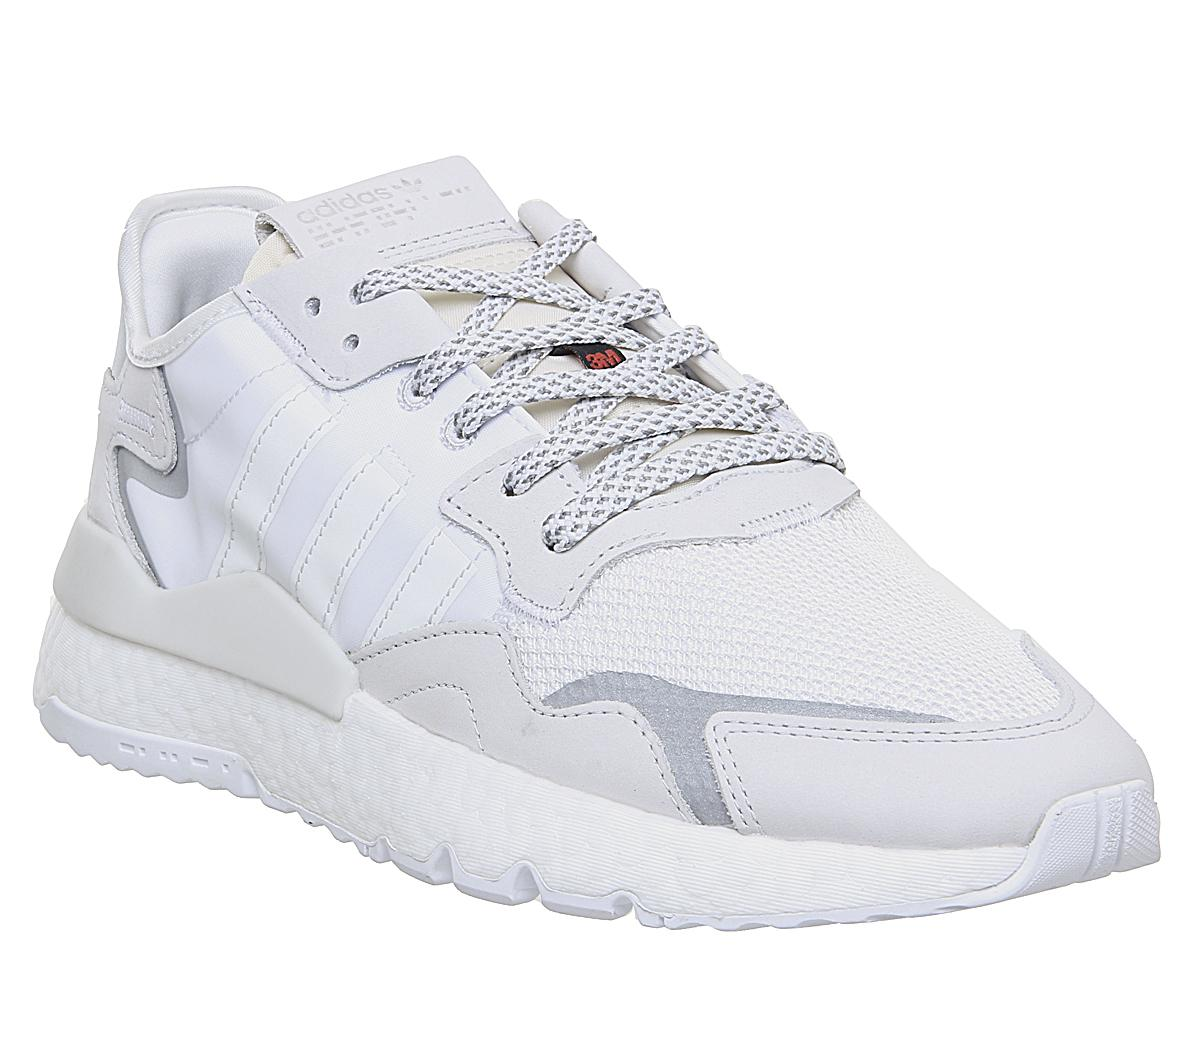 adidas Nite Jogger Boost Trainers